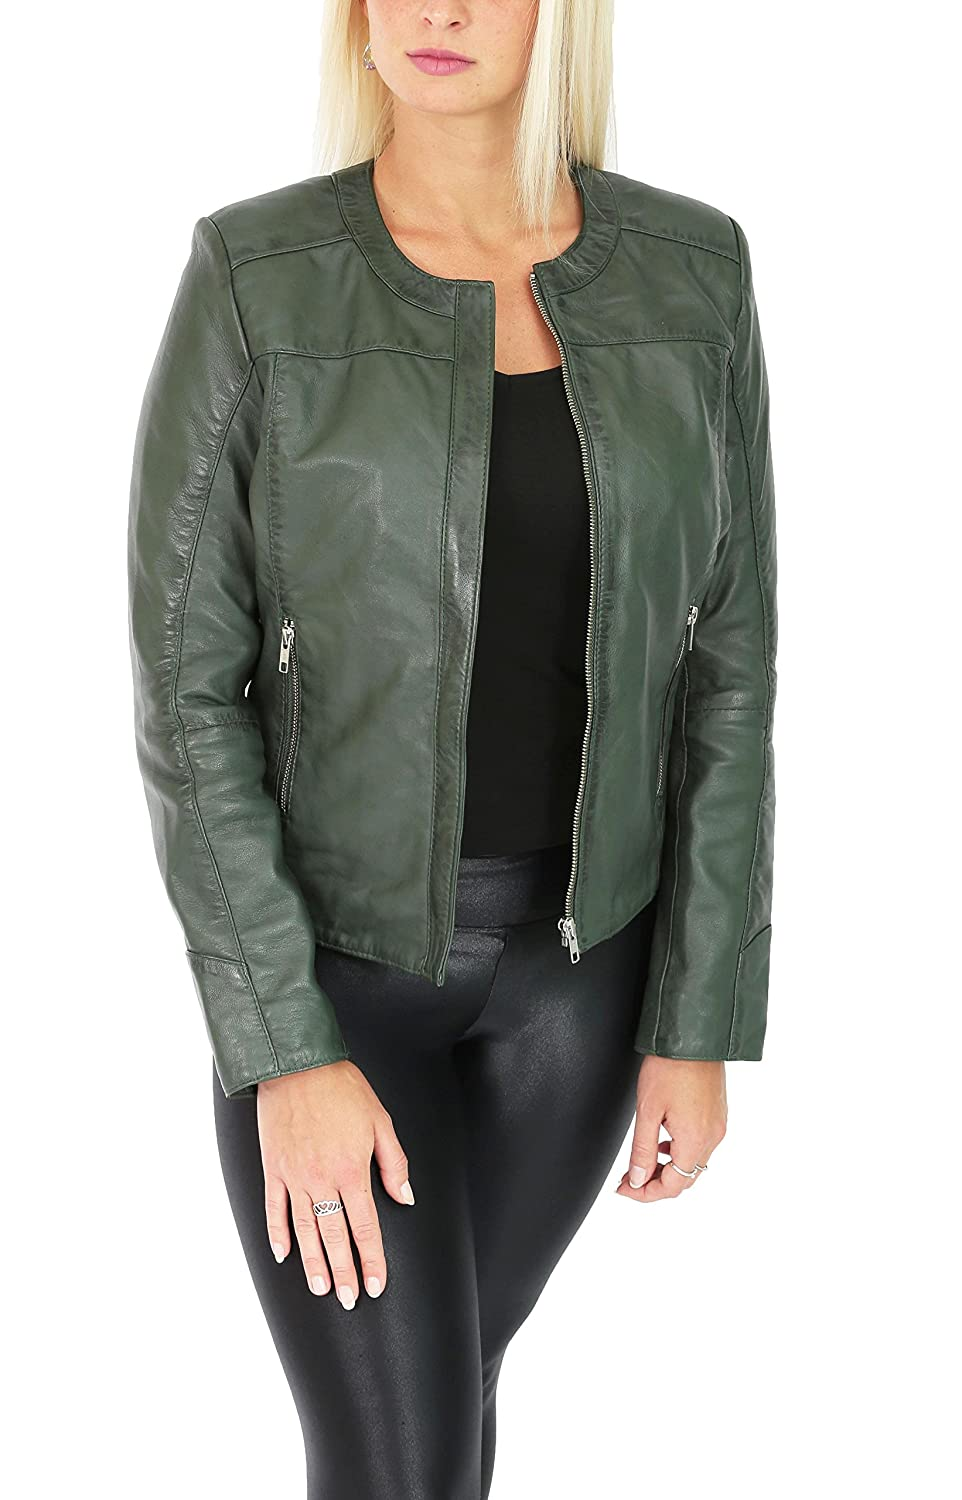 Real Leather Collarless Jacket for Women Tailored Cut Slim ...